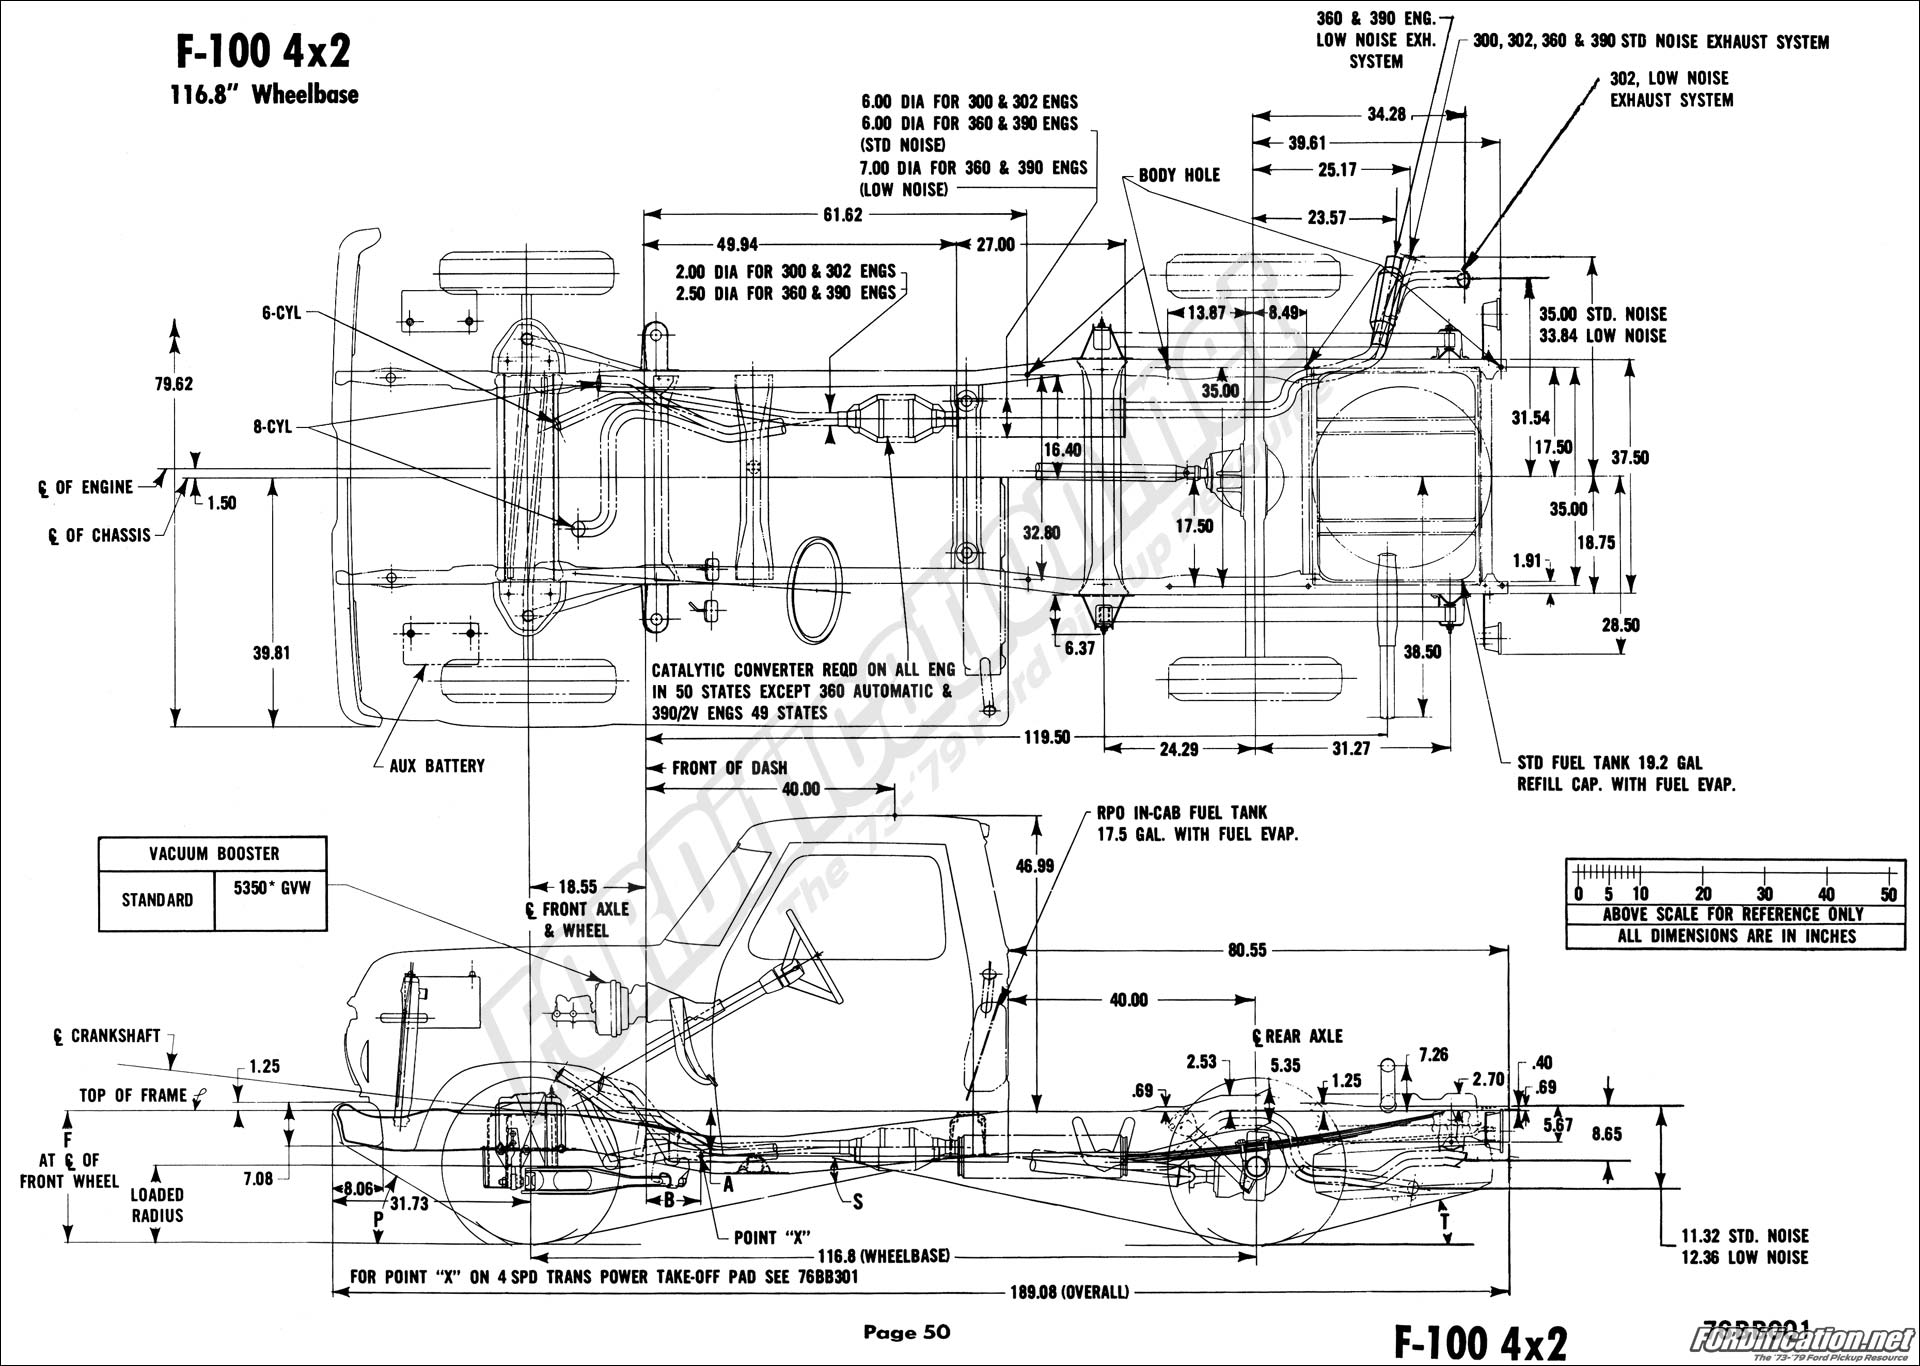 F250 Frame Diagram Schema Wiring Diagrams Ford Automotive Fuse Panel 2004 F 150